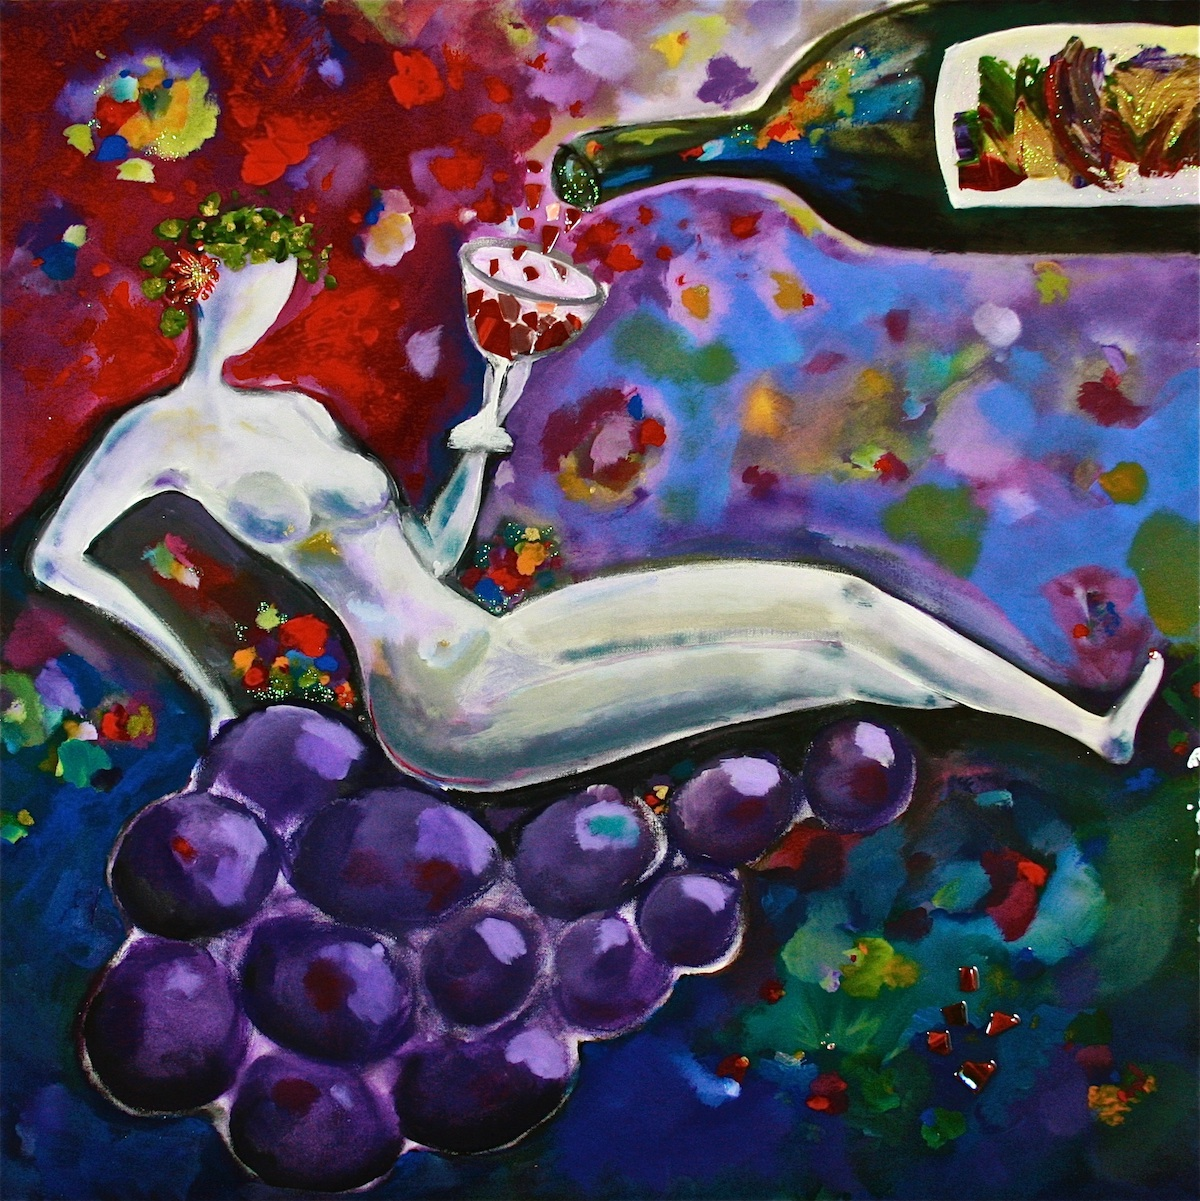 Goddess of Cabernet - Painting by Stephanie Schlatter